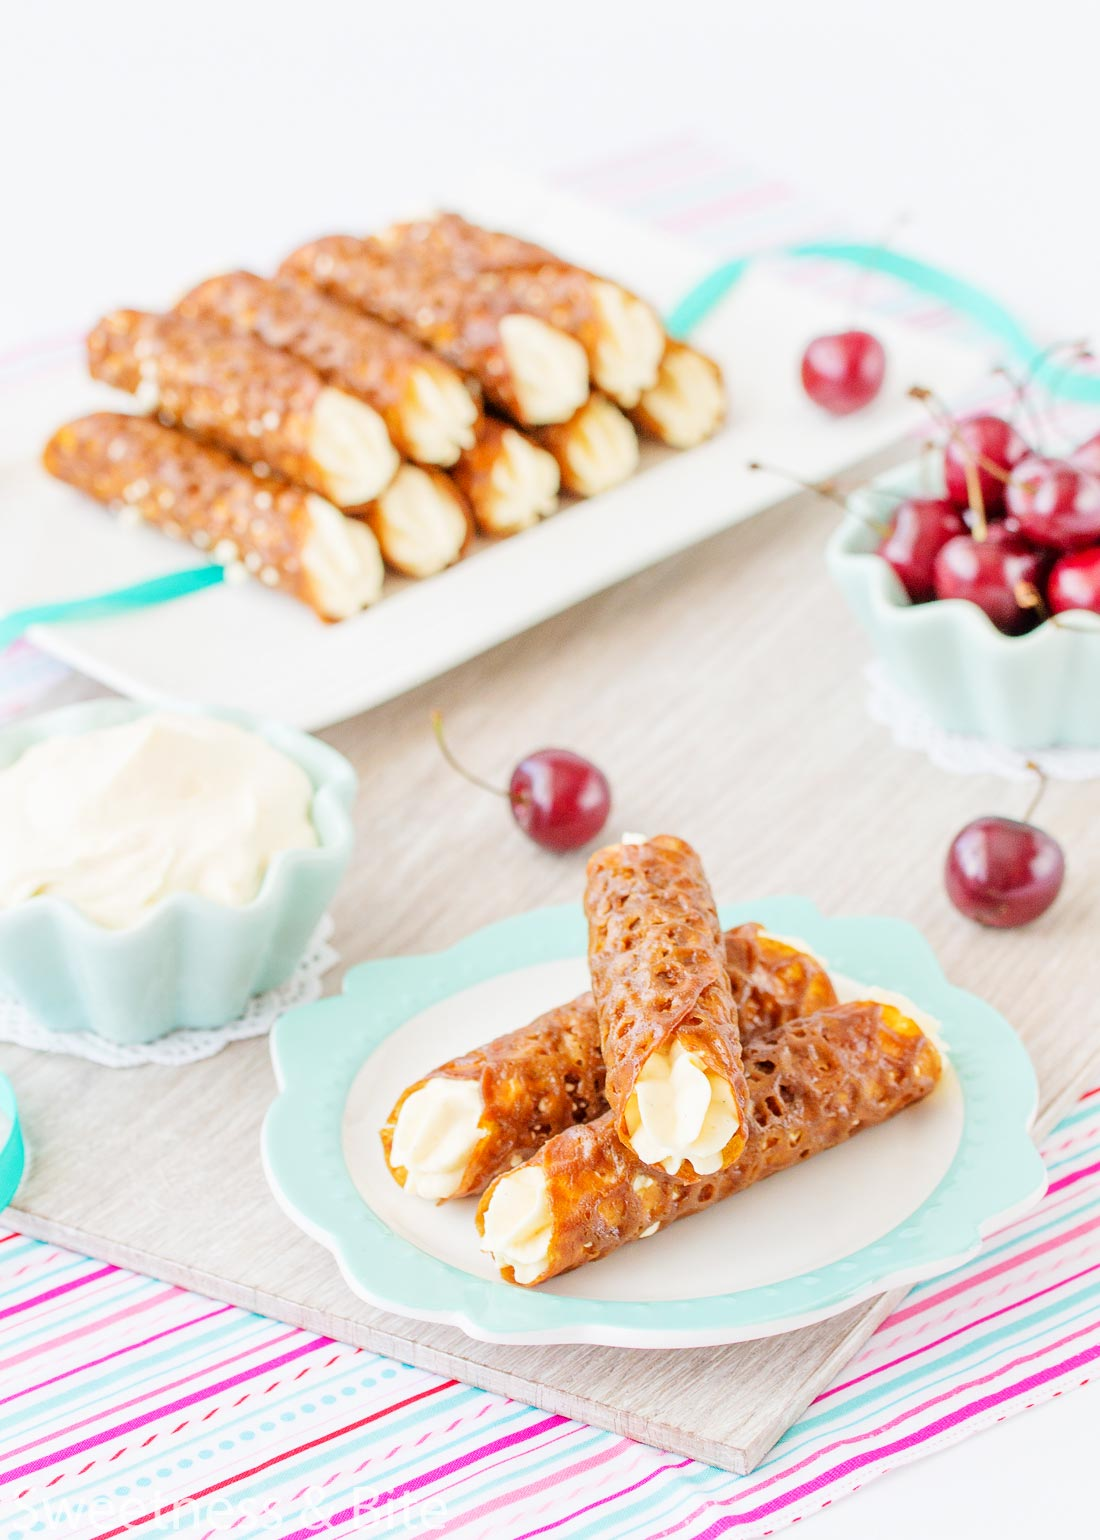 Three gluten free brandy snaps stacked on a plate in the foreground, with a bowl of whipped cream and fresh cherries in the background.